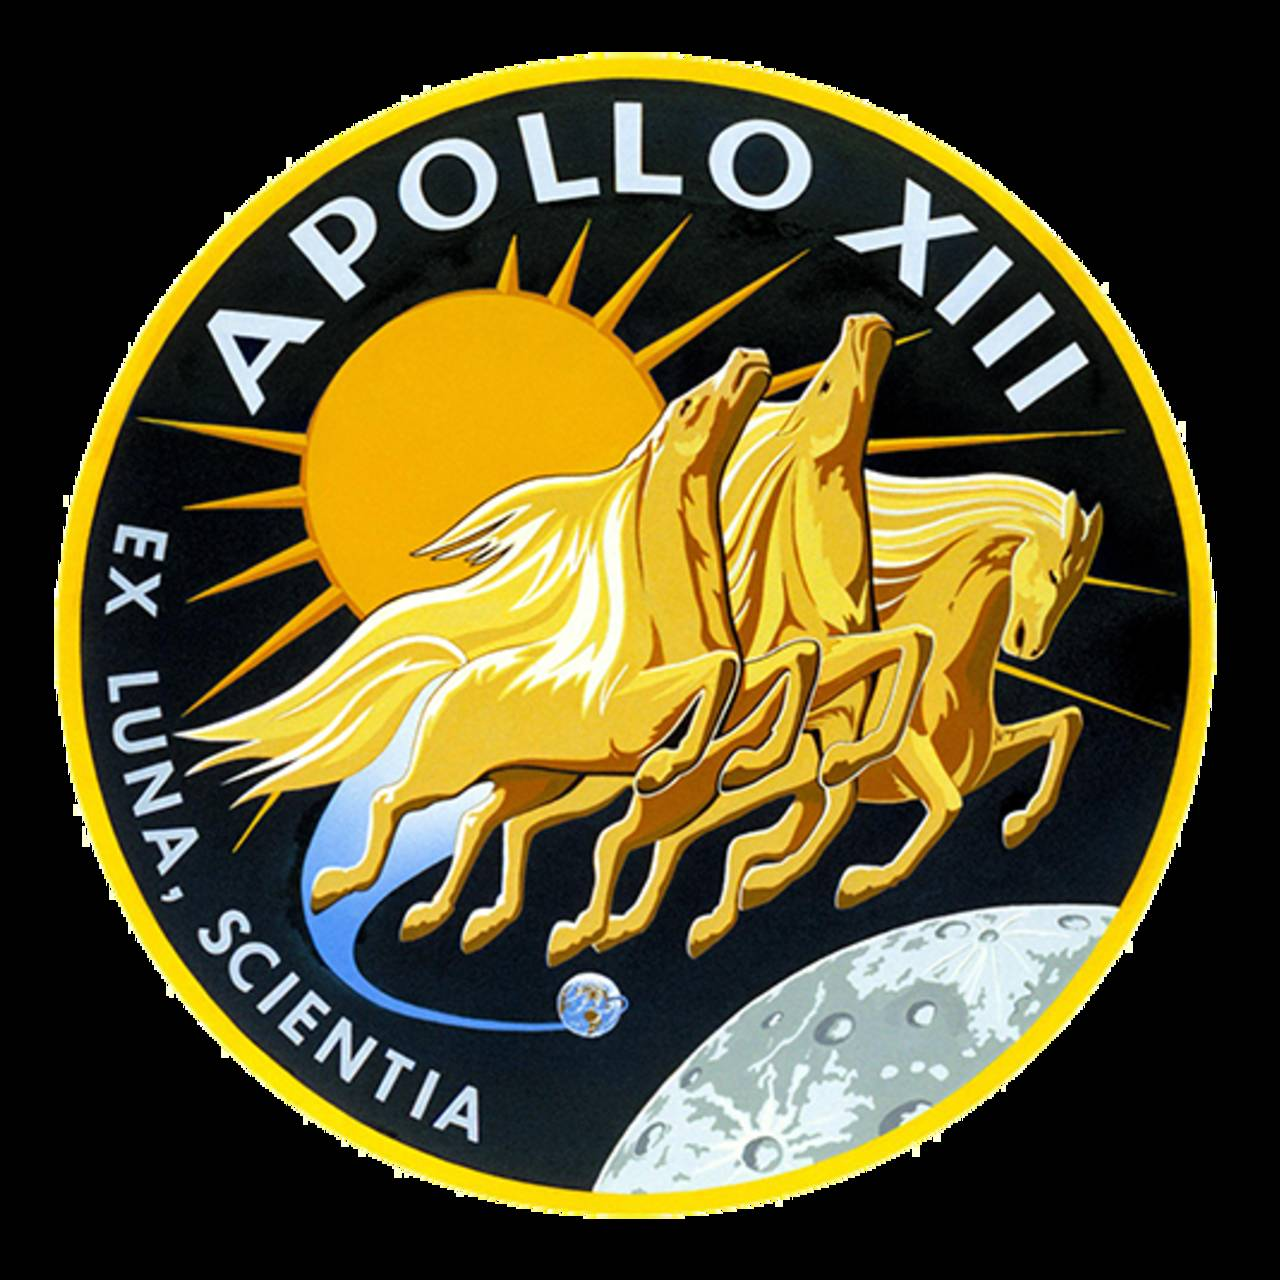 apollo13-patch_1560300885351.png